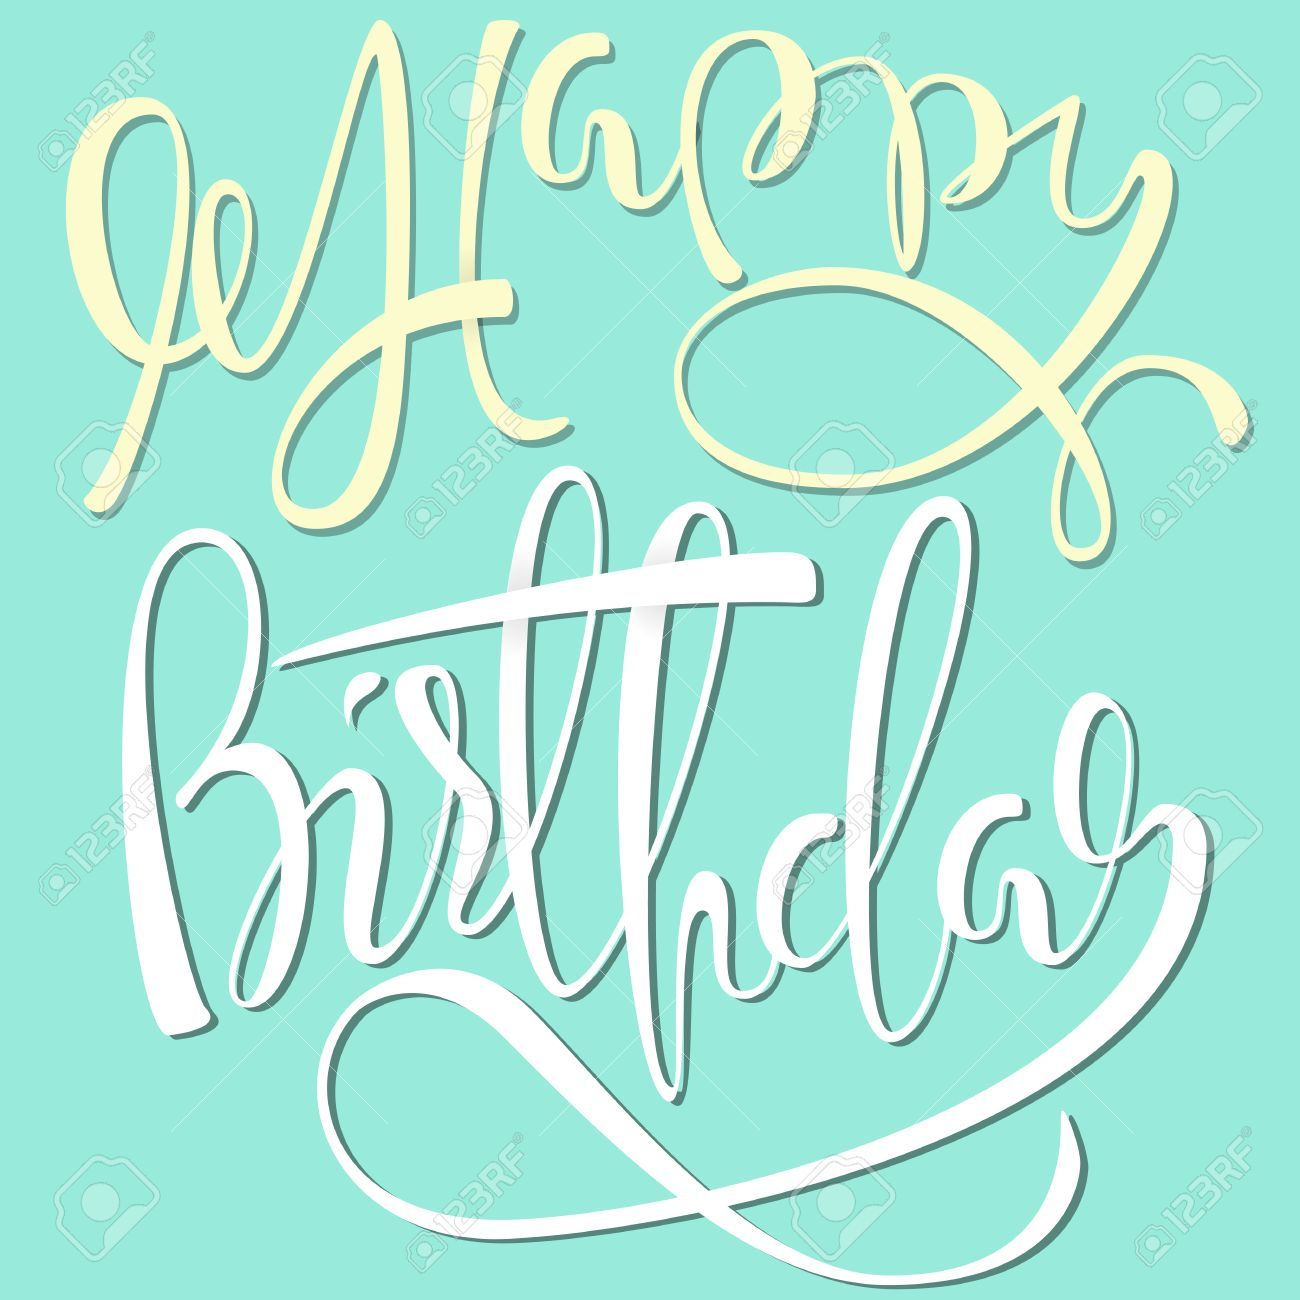 Happy Birthday White And Yellow Lettering On Mint Color Background Stock Vector